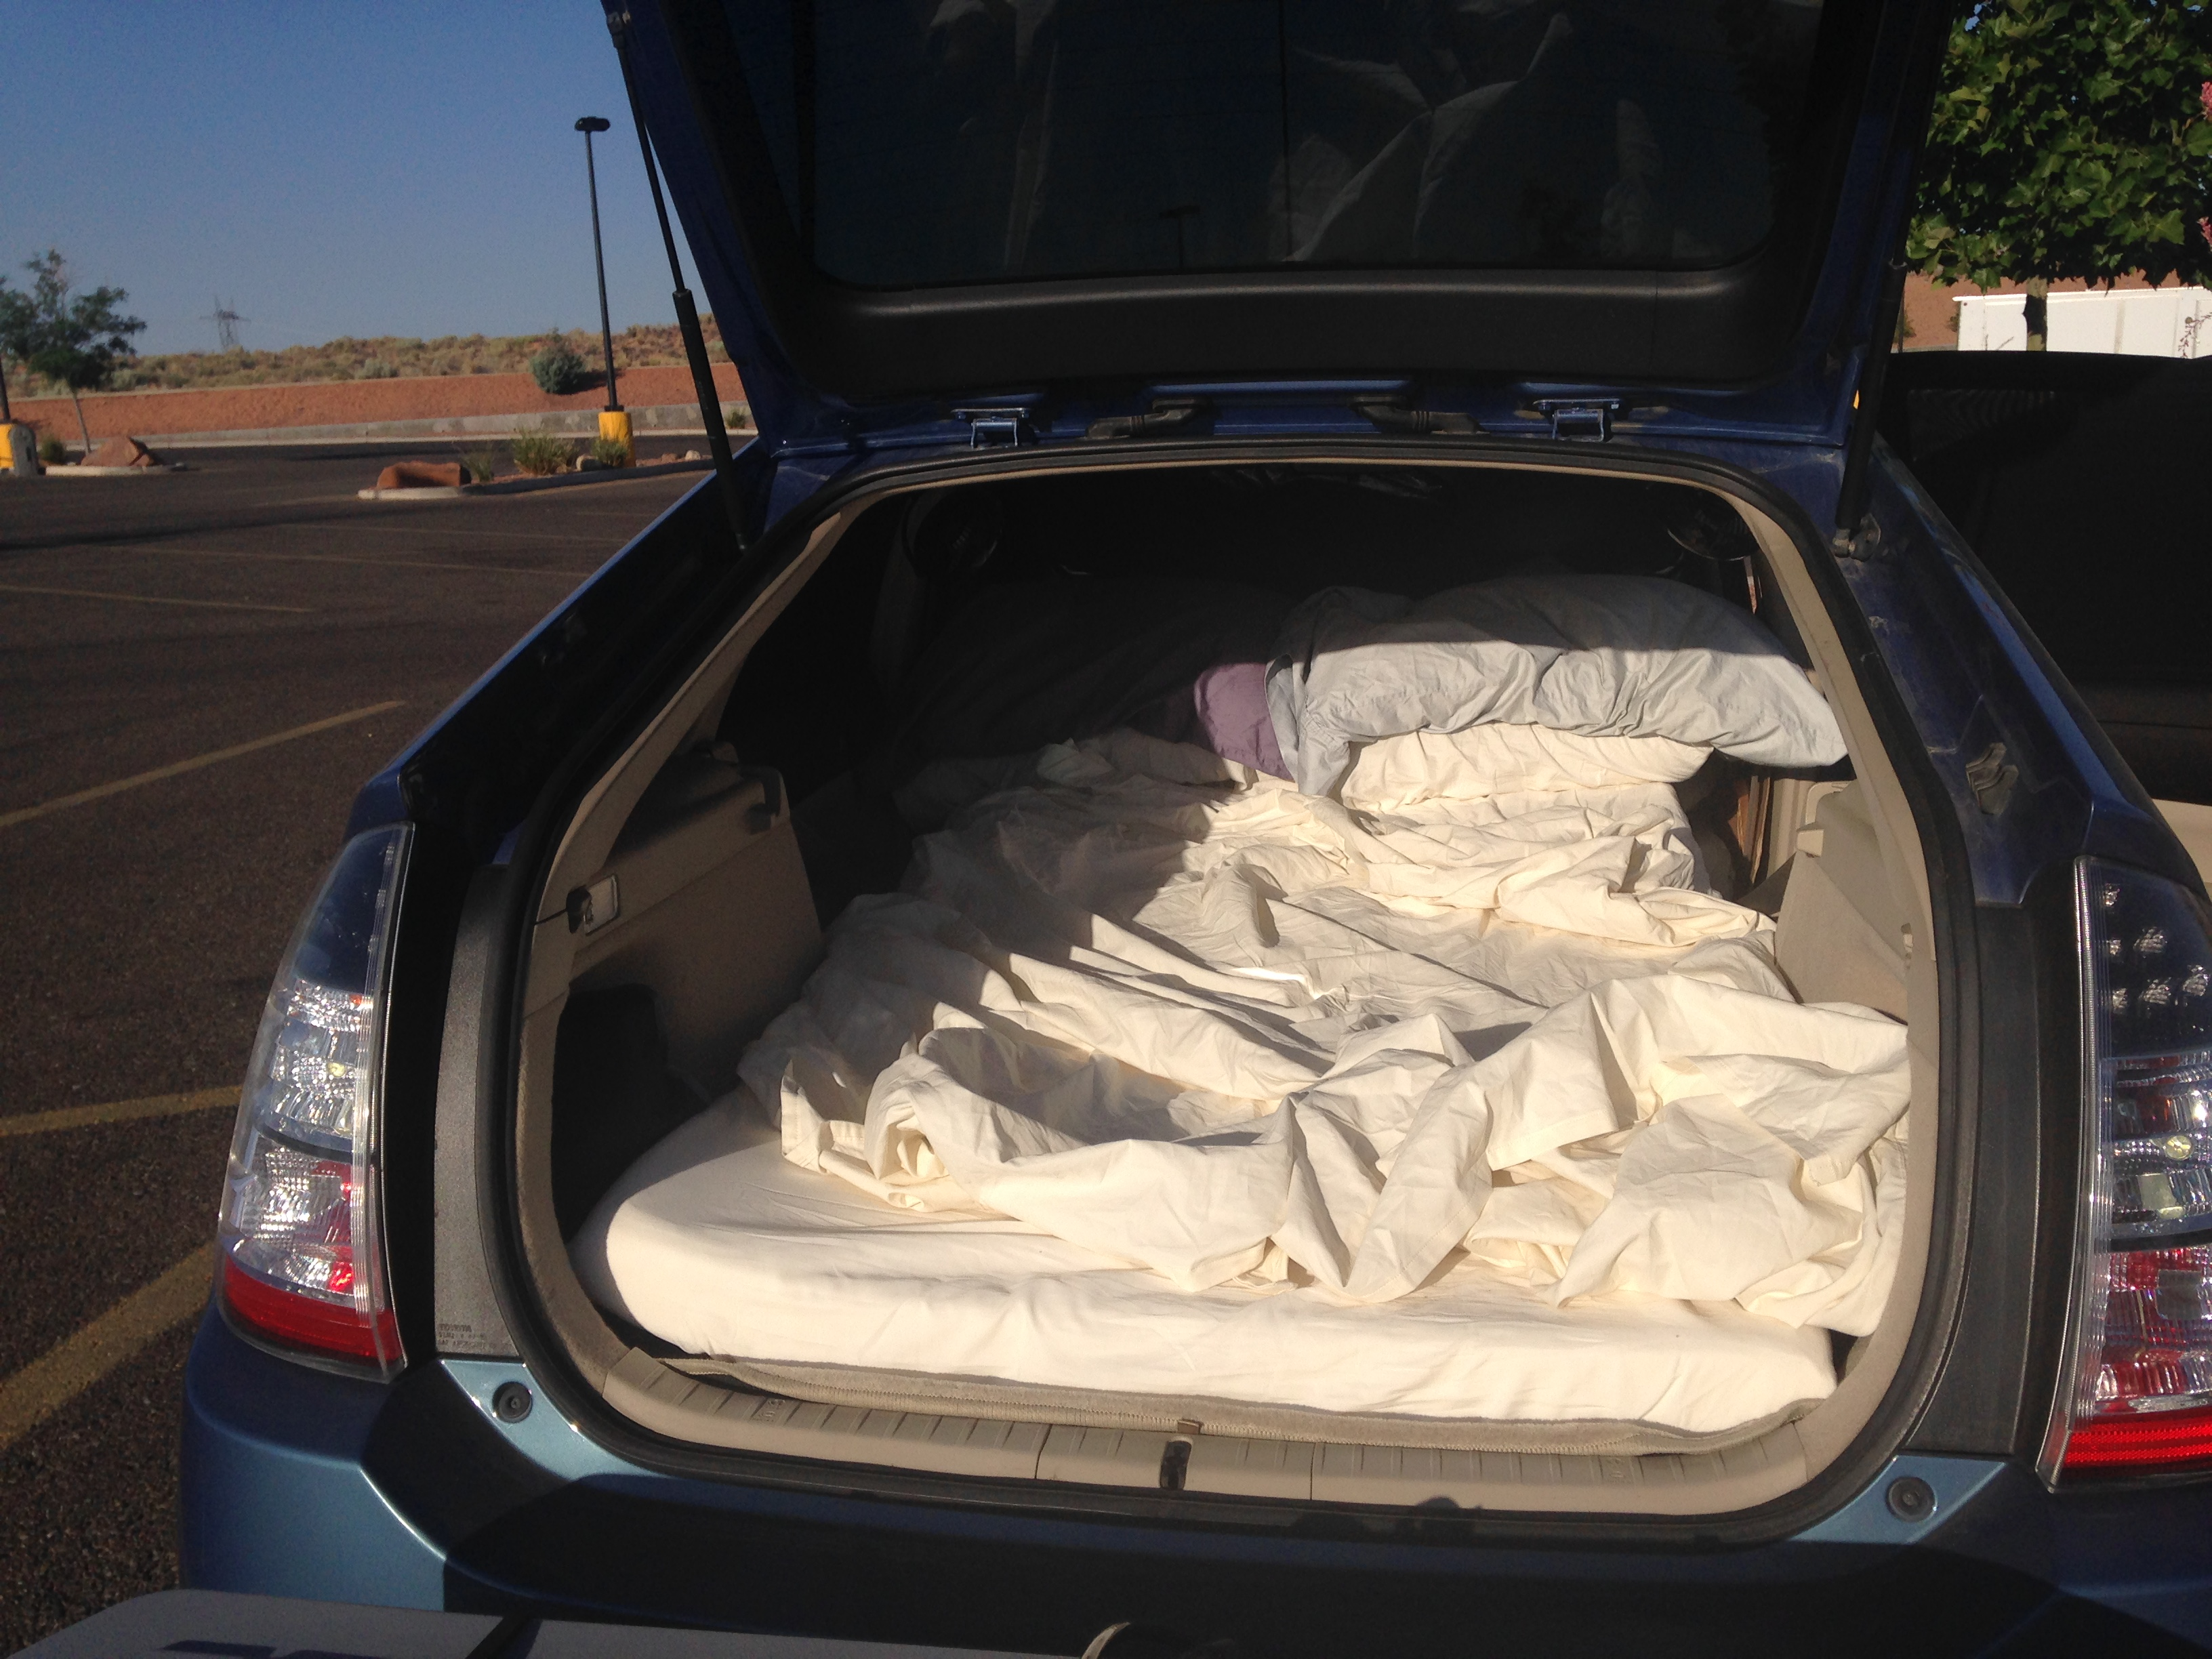 Prius Mattress For Pictures Inspirational Pictures : IMG6121 from www.carcanyon.com size 3264 x 2448 jpeg 1801kB